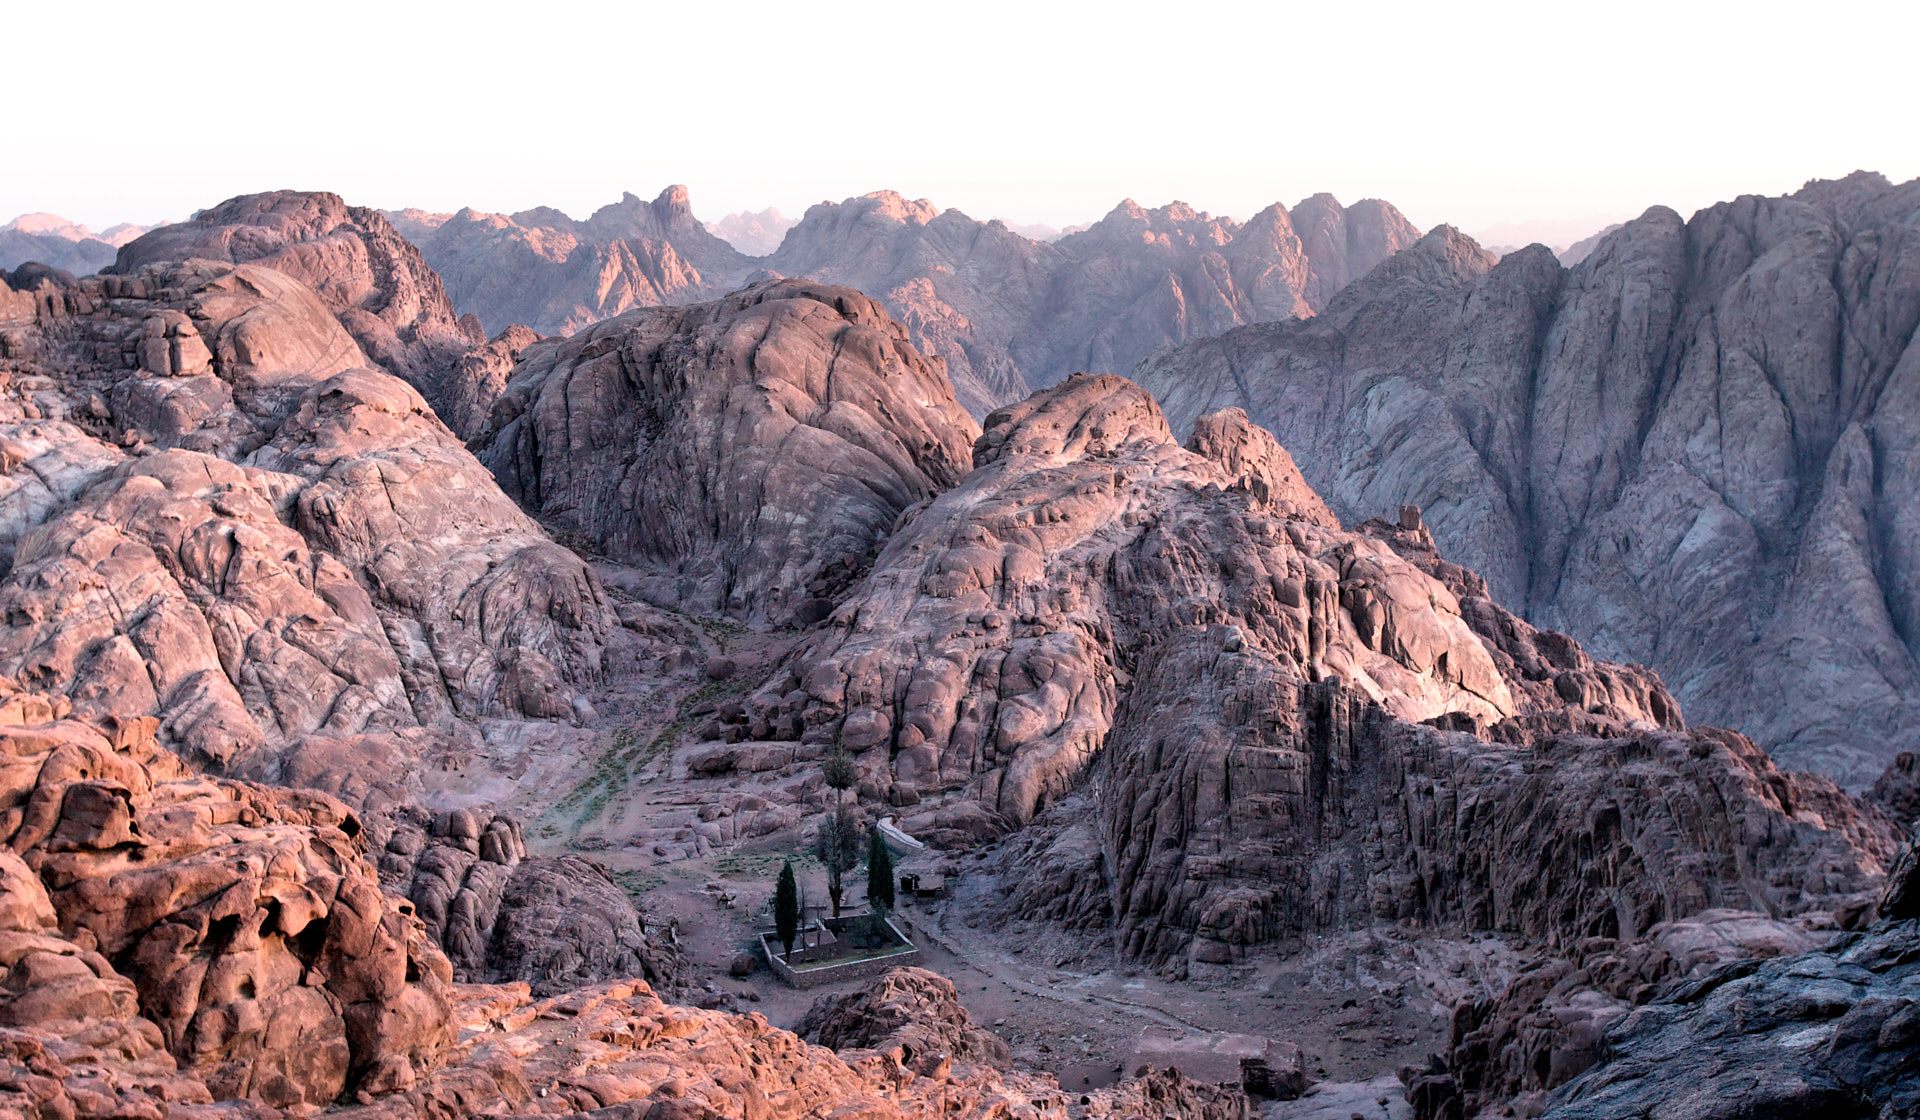 Sunrise Mount Sinai